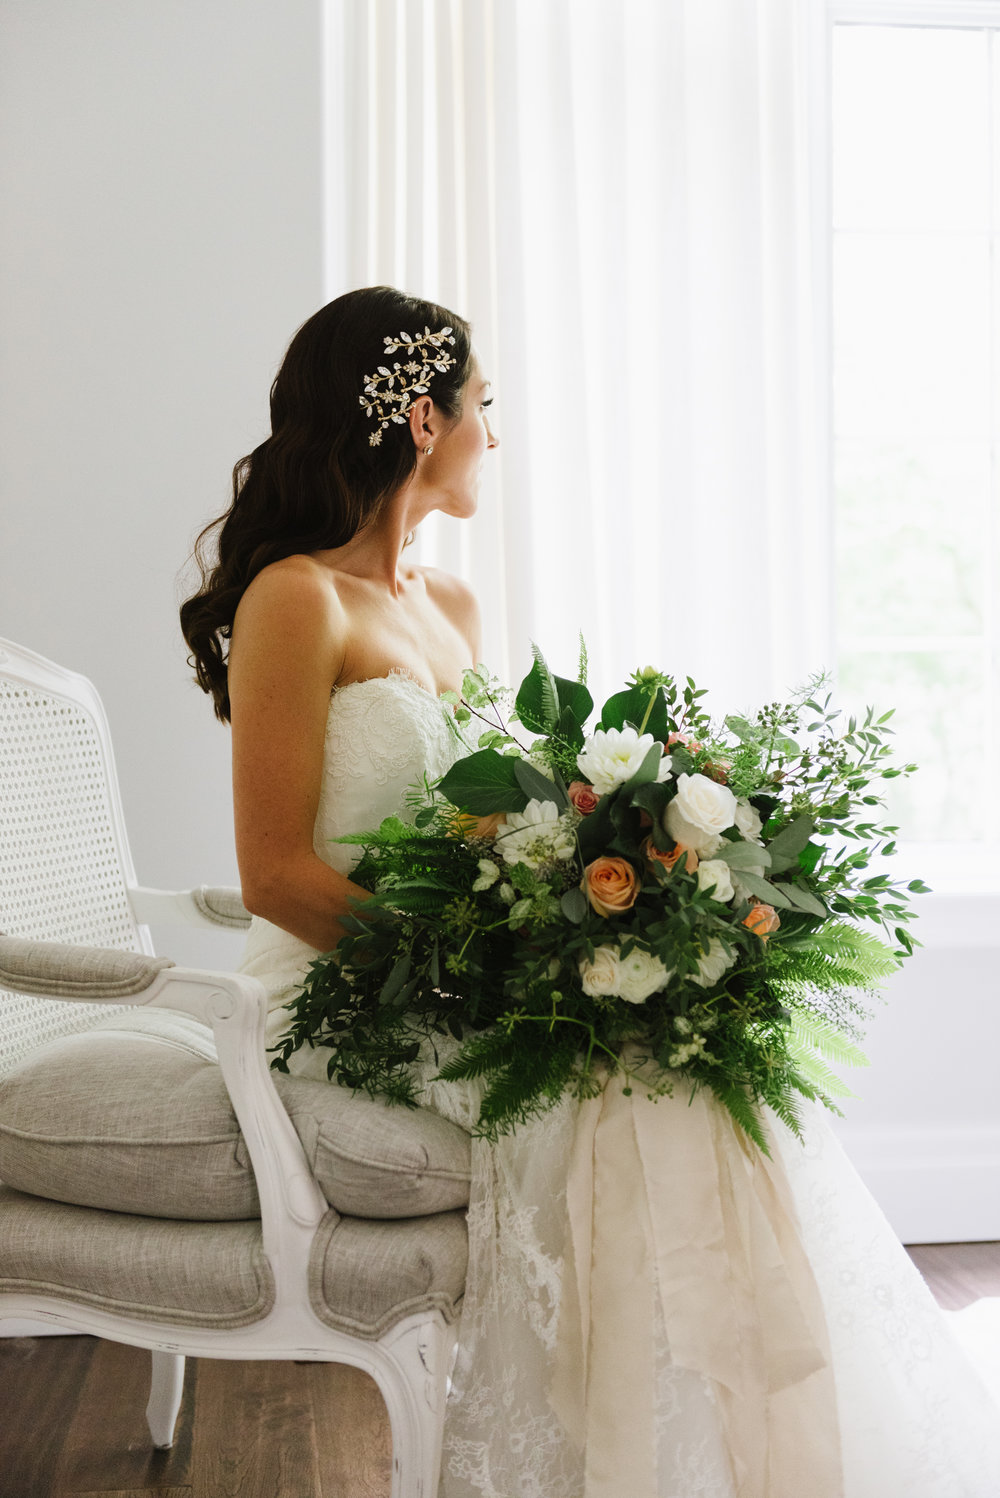 bride-portrait-natural-light-bouquet-greenery